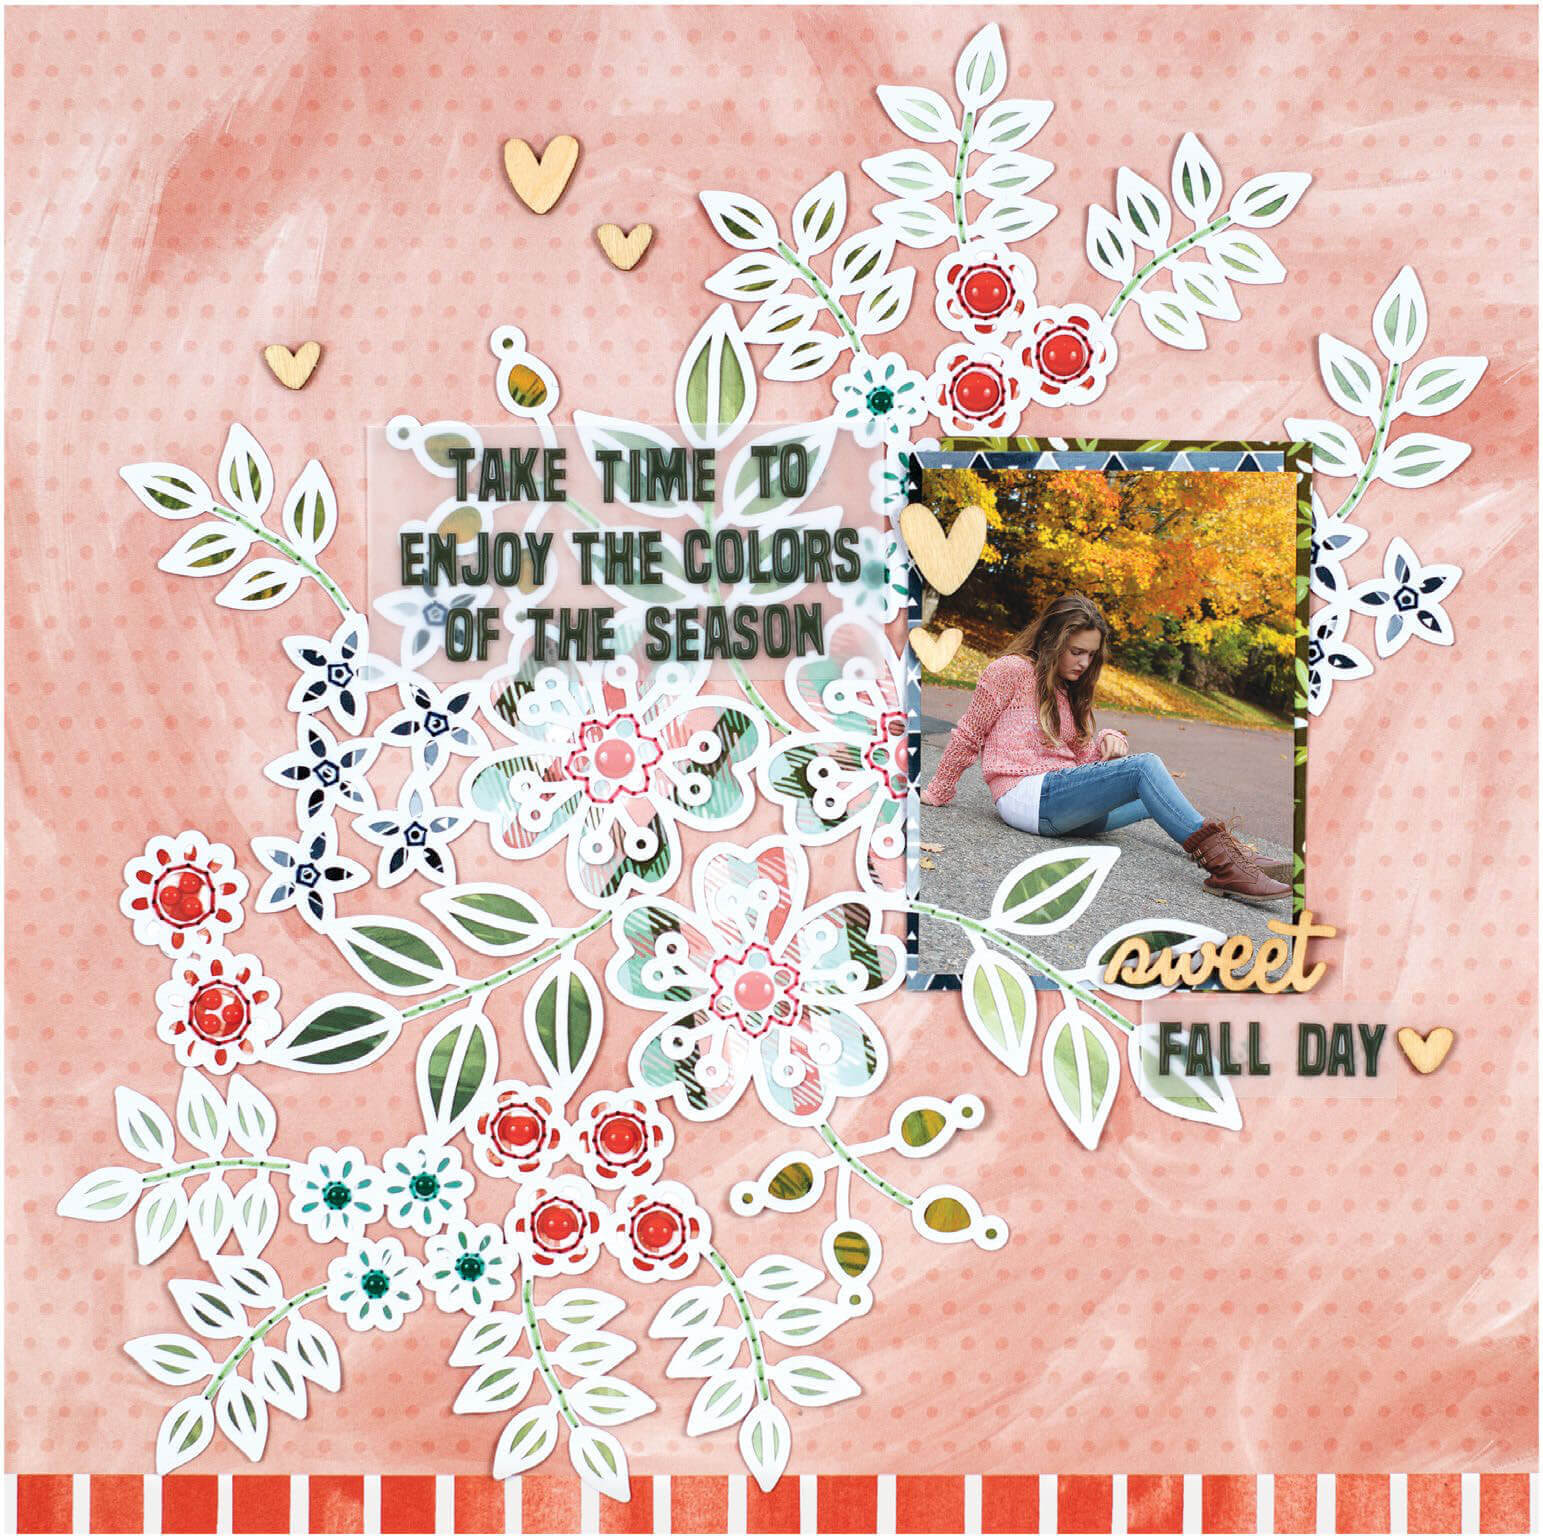 SCT Fall 2019 - Sweet Fall Day by Michelle Gallant